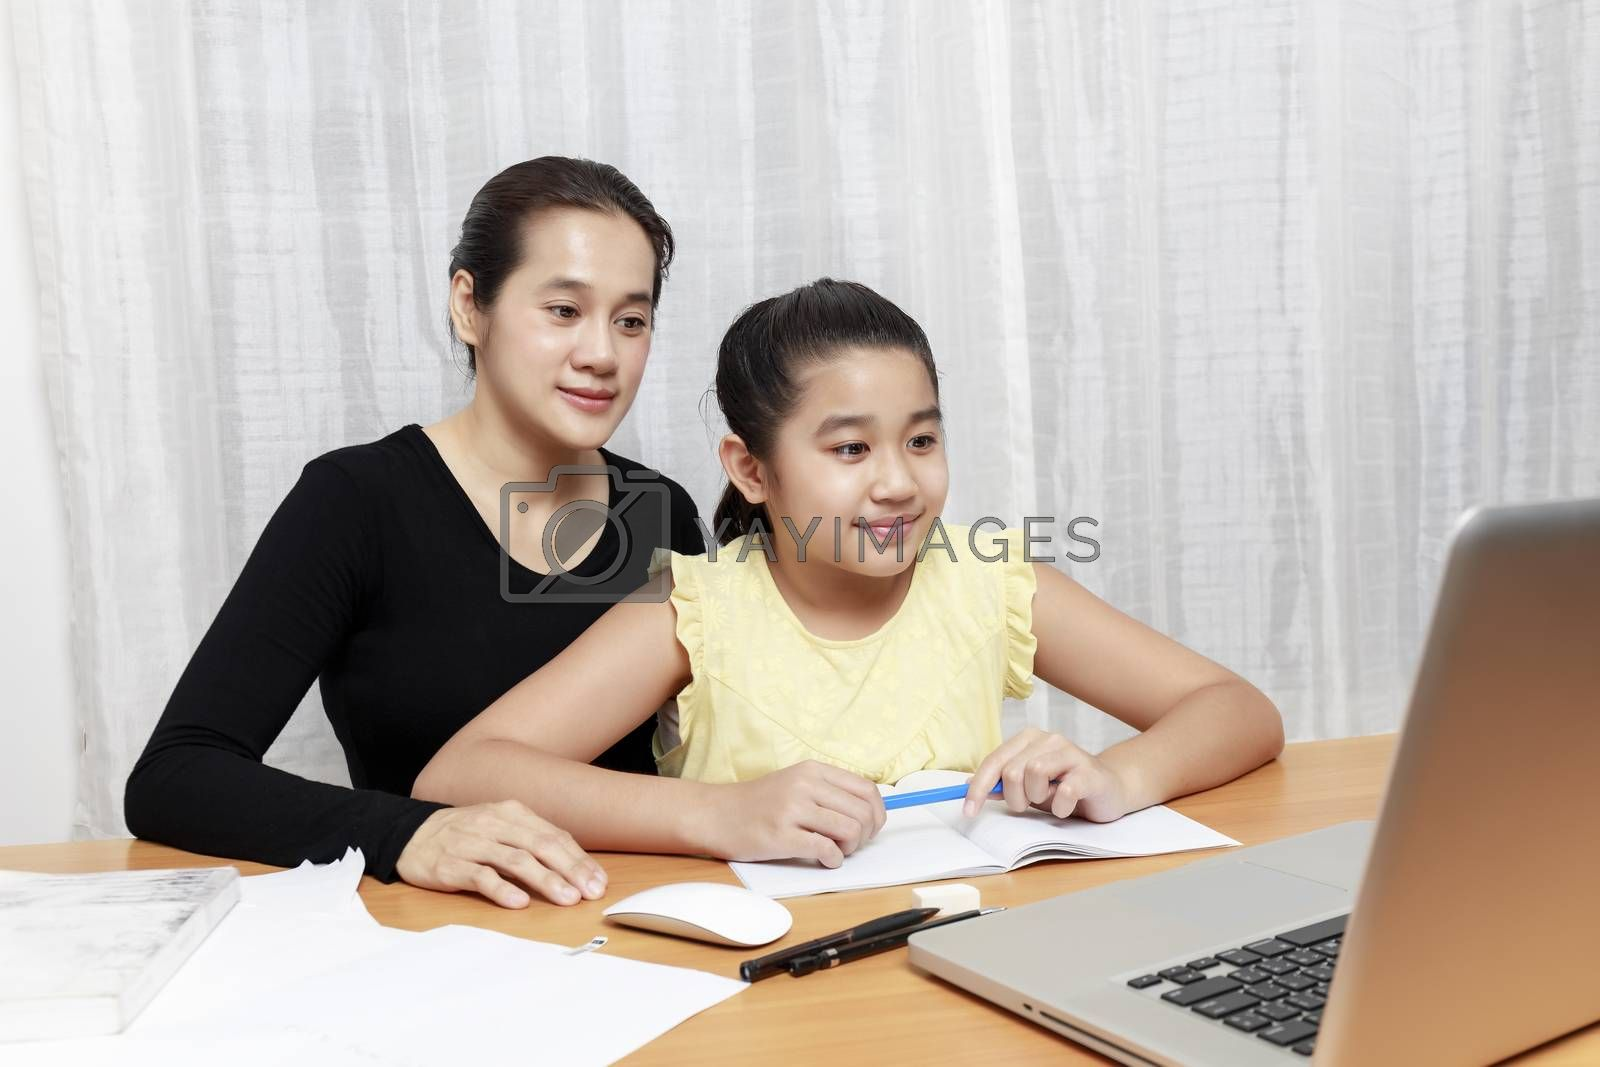 Asian young little girl using pencil to do homework with her mother. Student kid writing  homework book. Girl use computer to study at home. Education homeschool  concept.